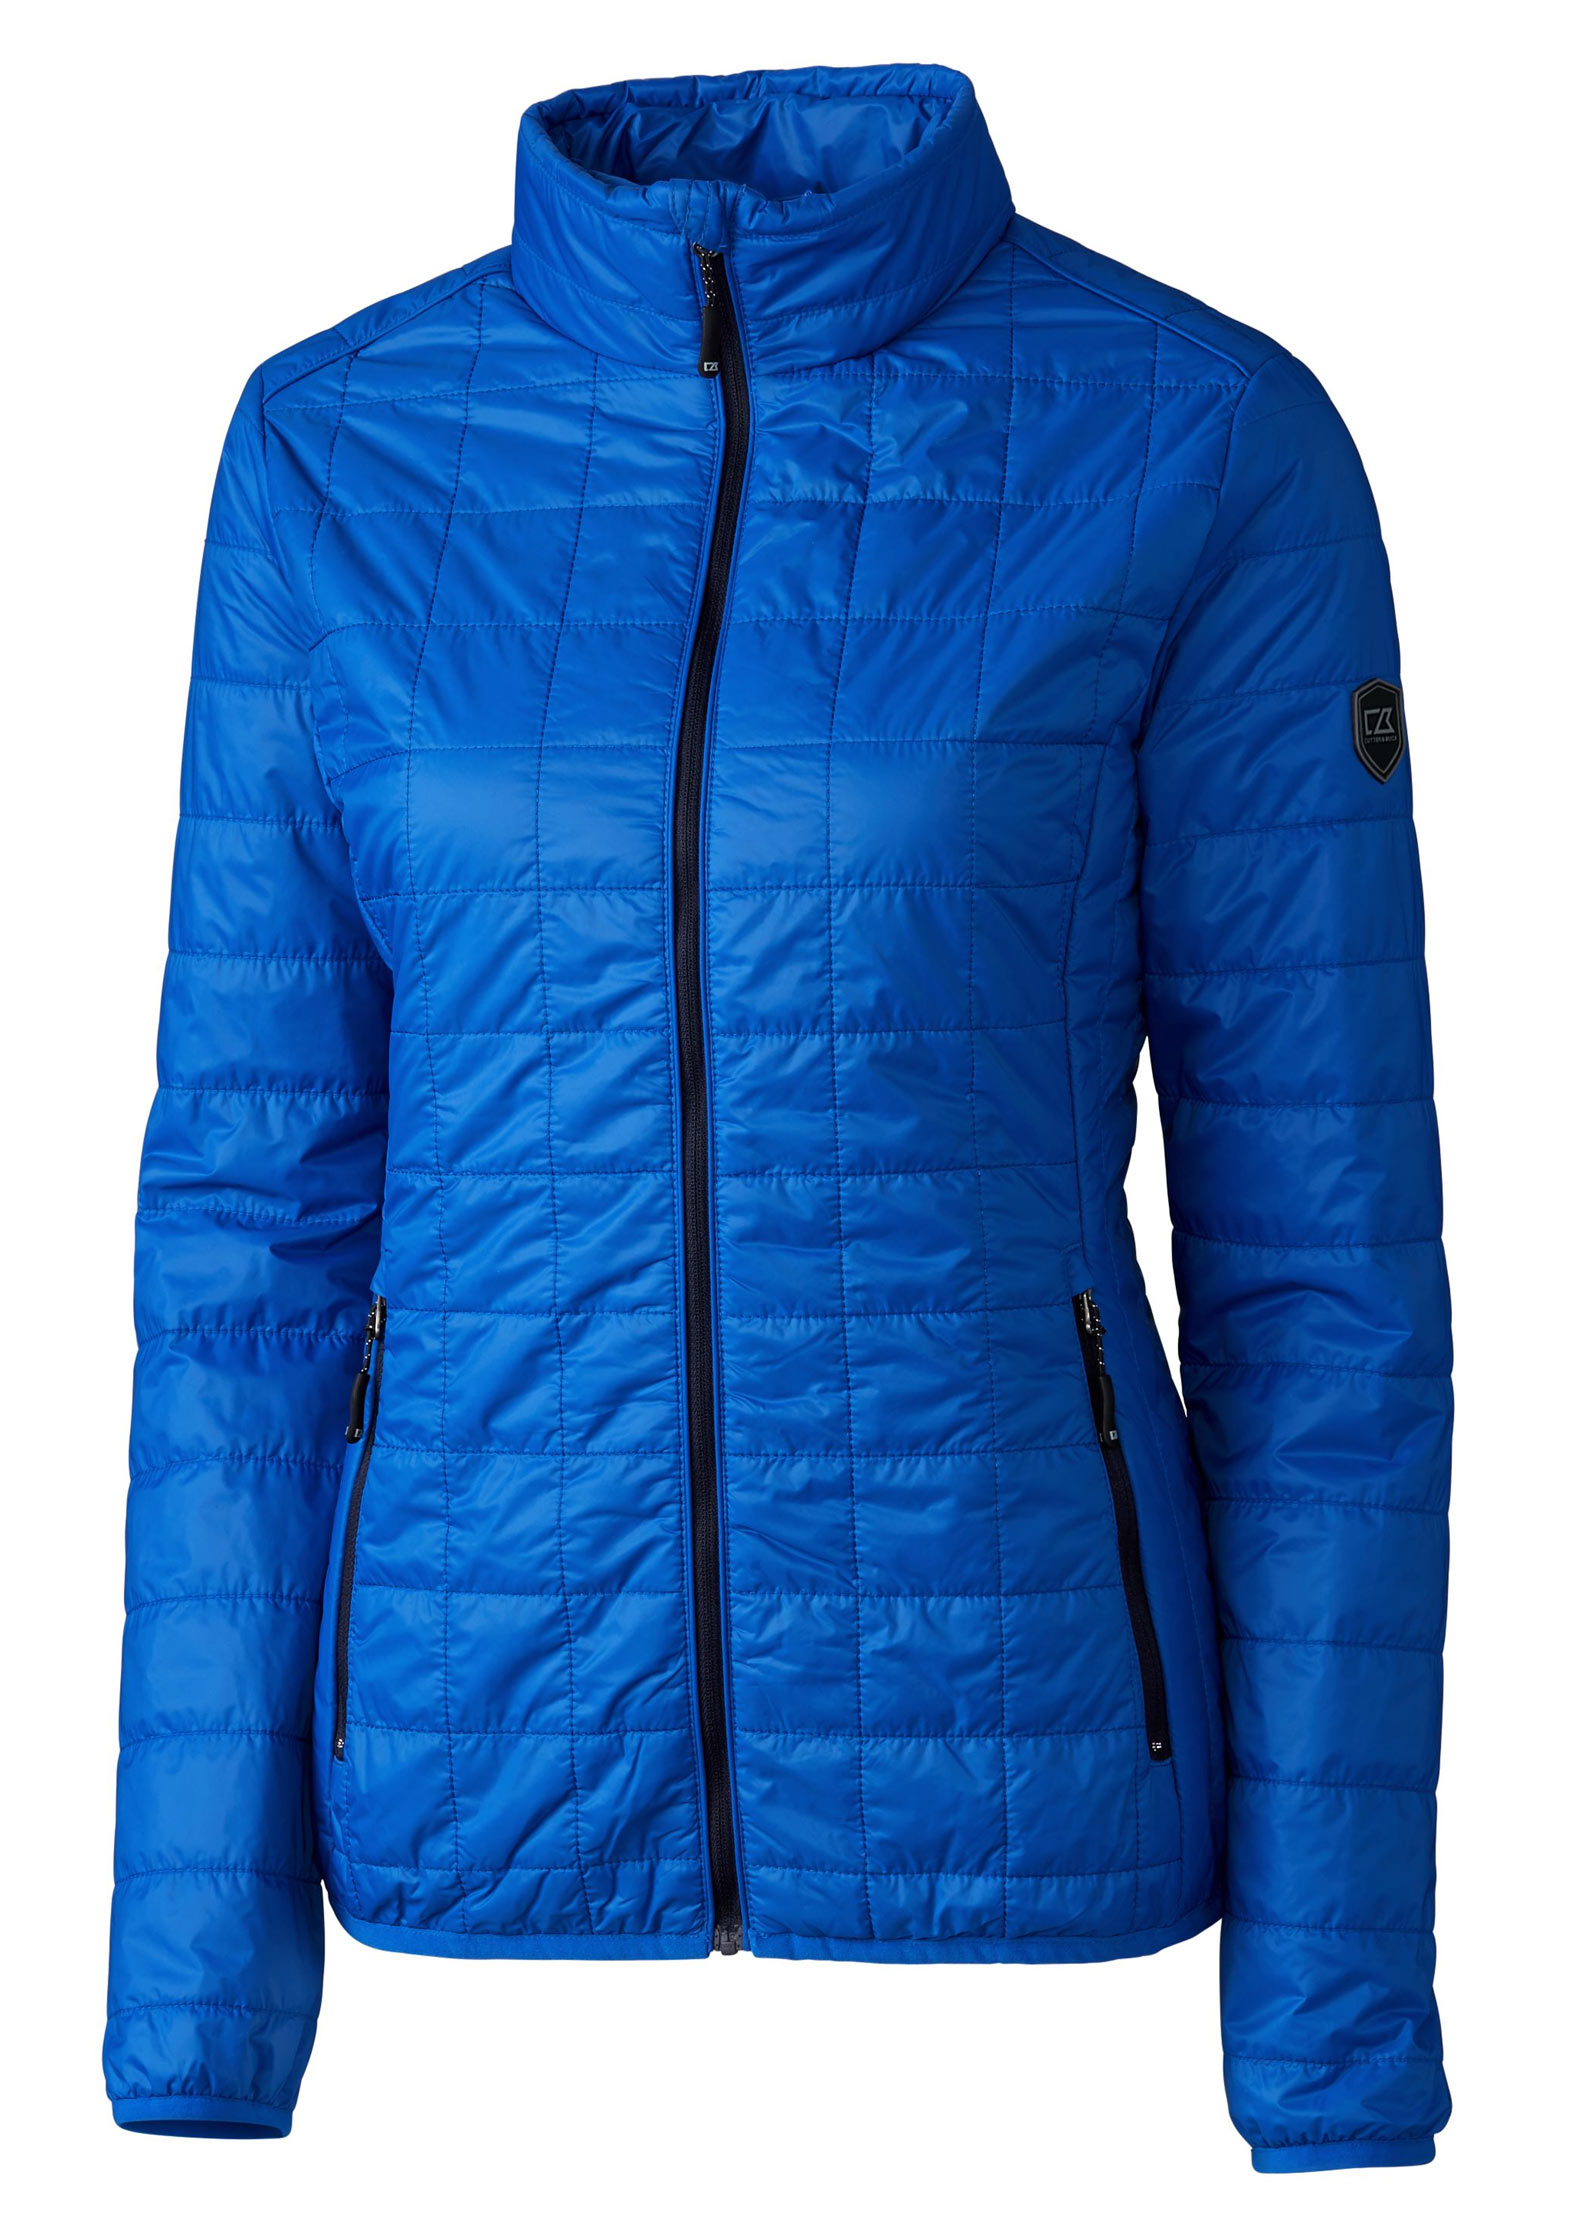 Cutter & Buck Ladies Rainier Jacket